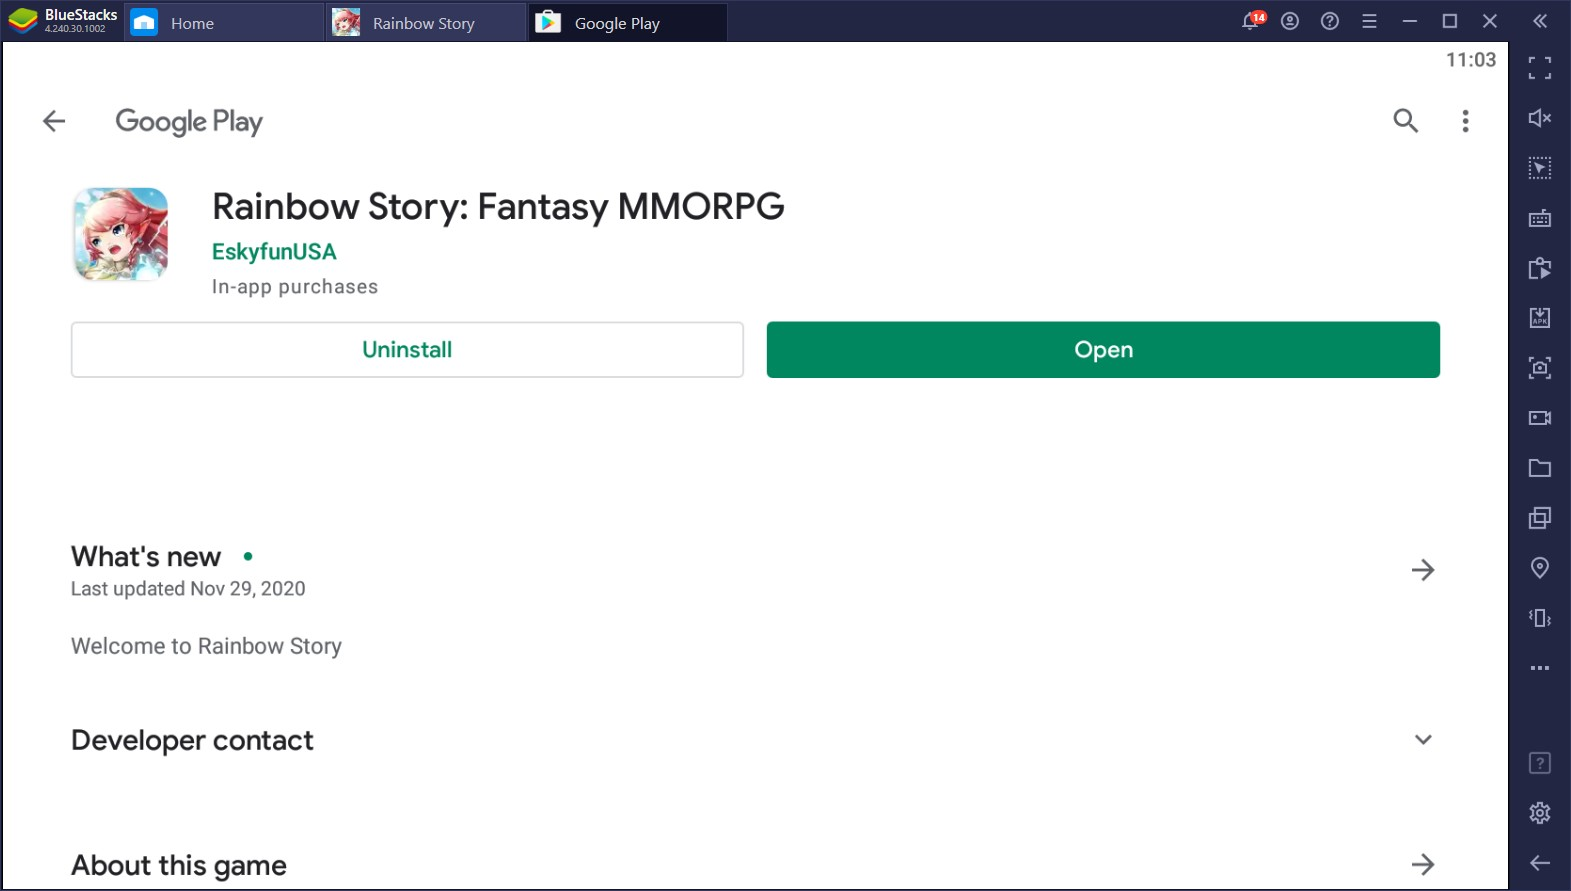 Rainbow Story – Enjoy This Sidescroller Fantasy MMORPG on PC With BlueStacks